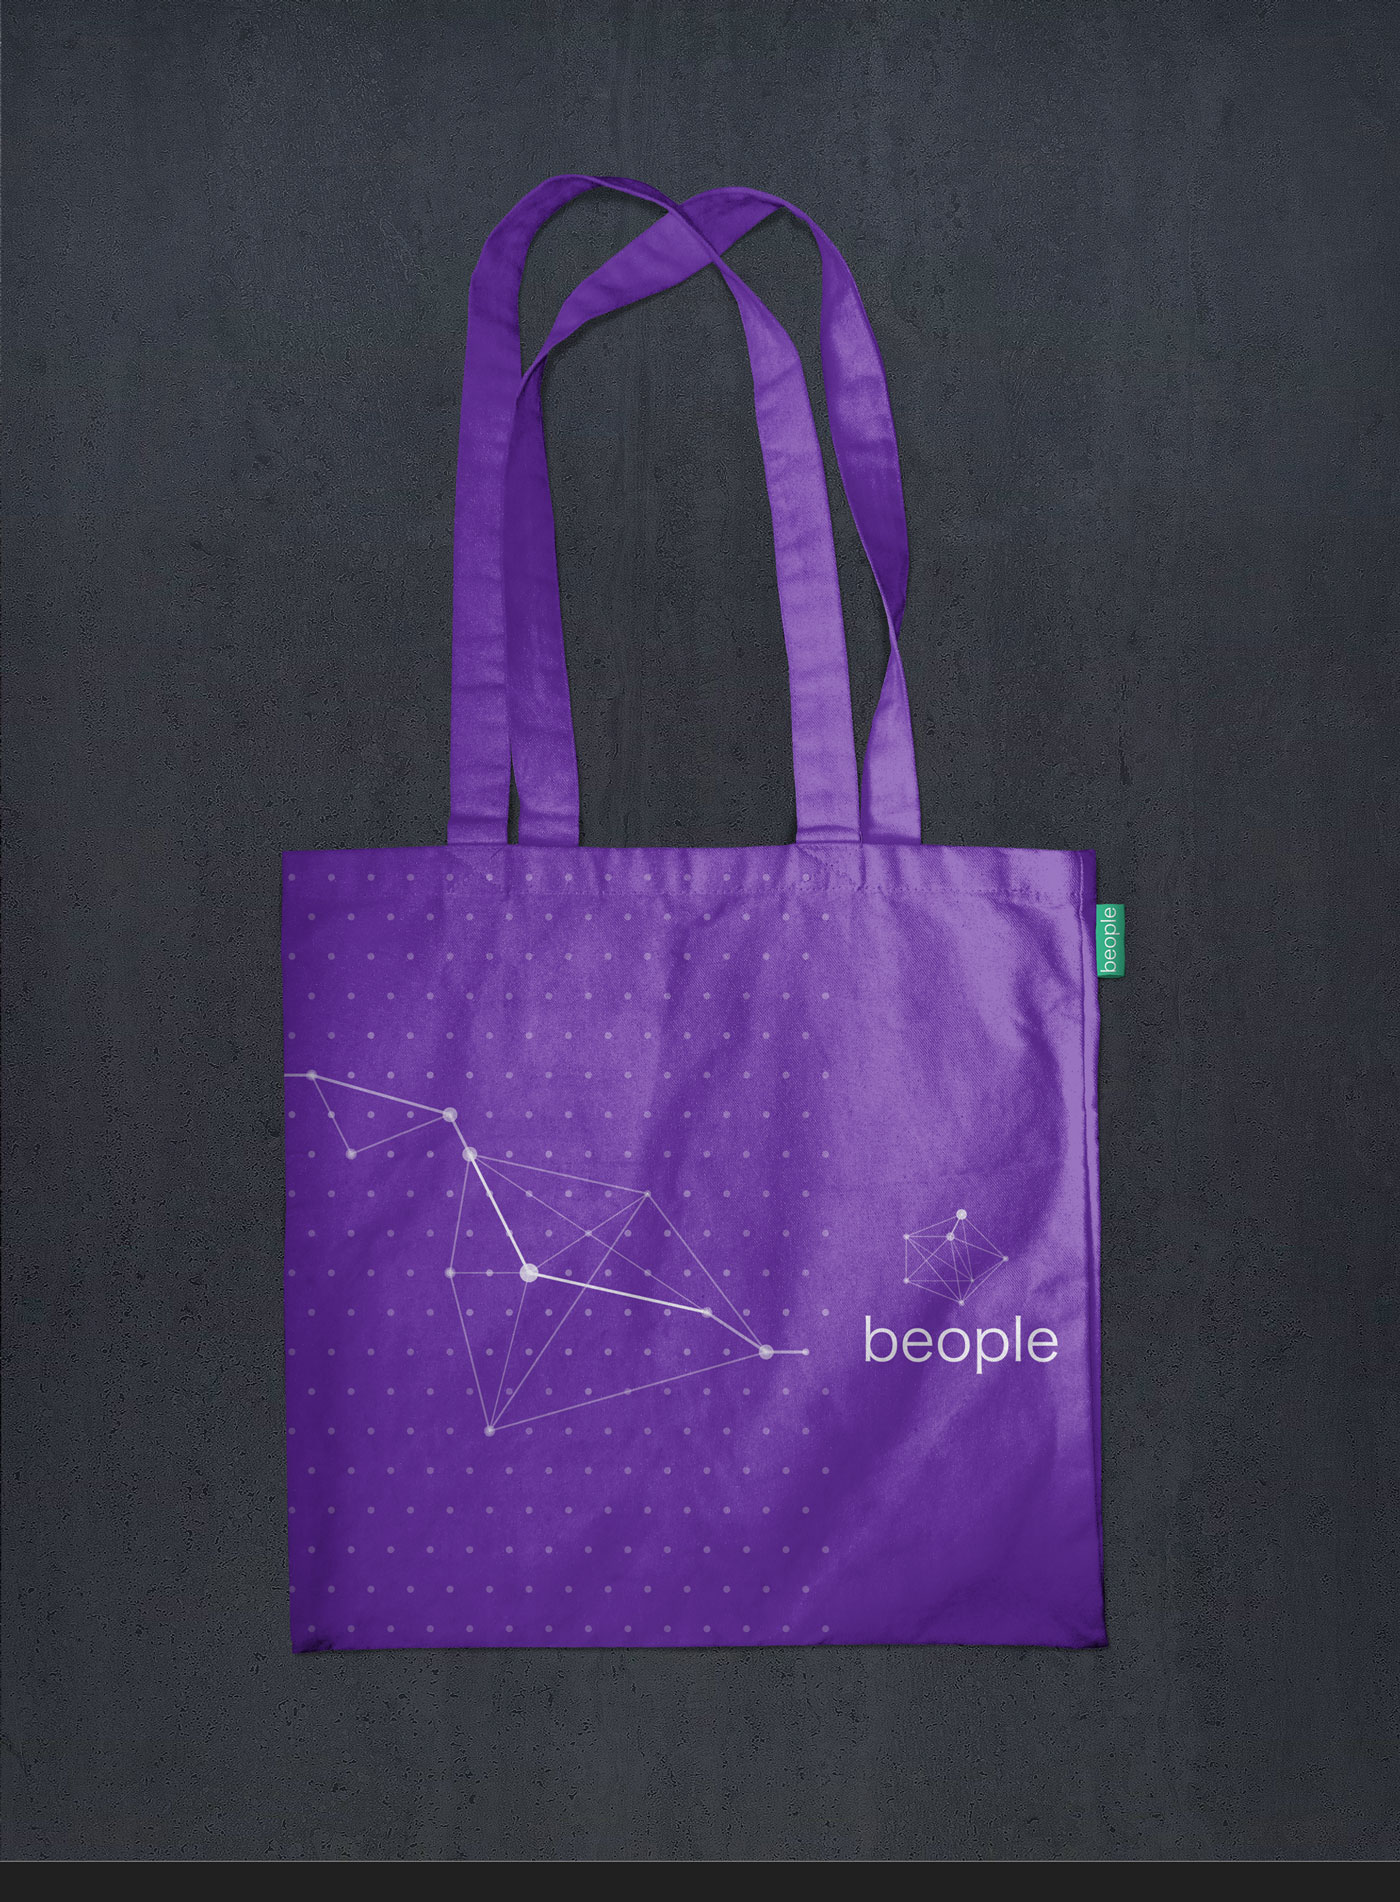 bag beople violet